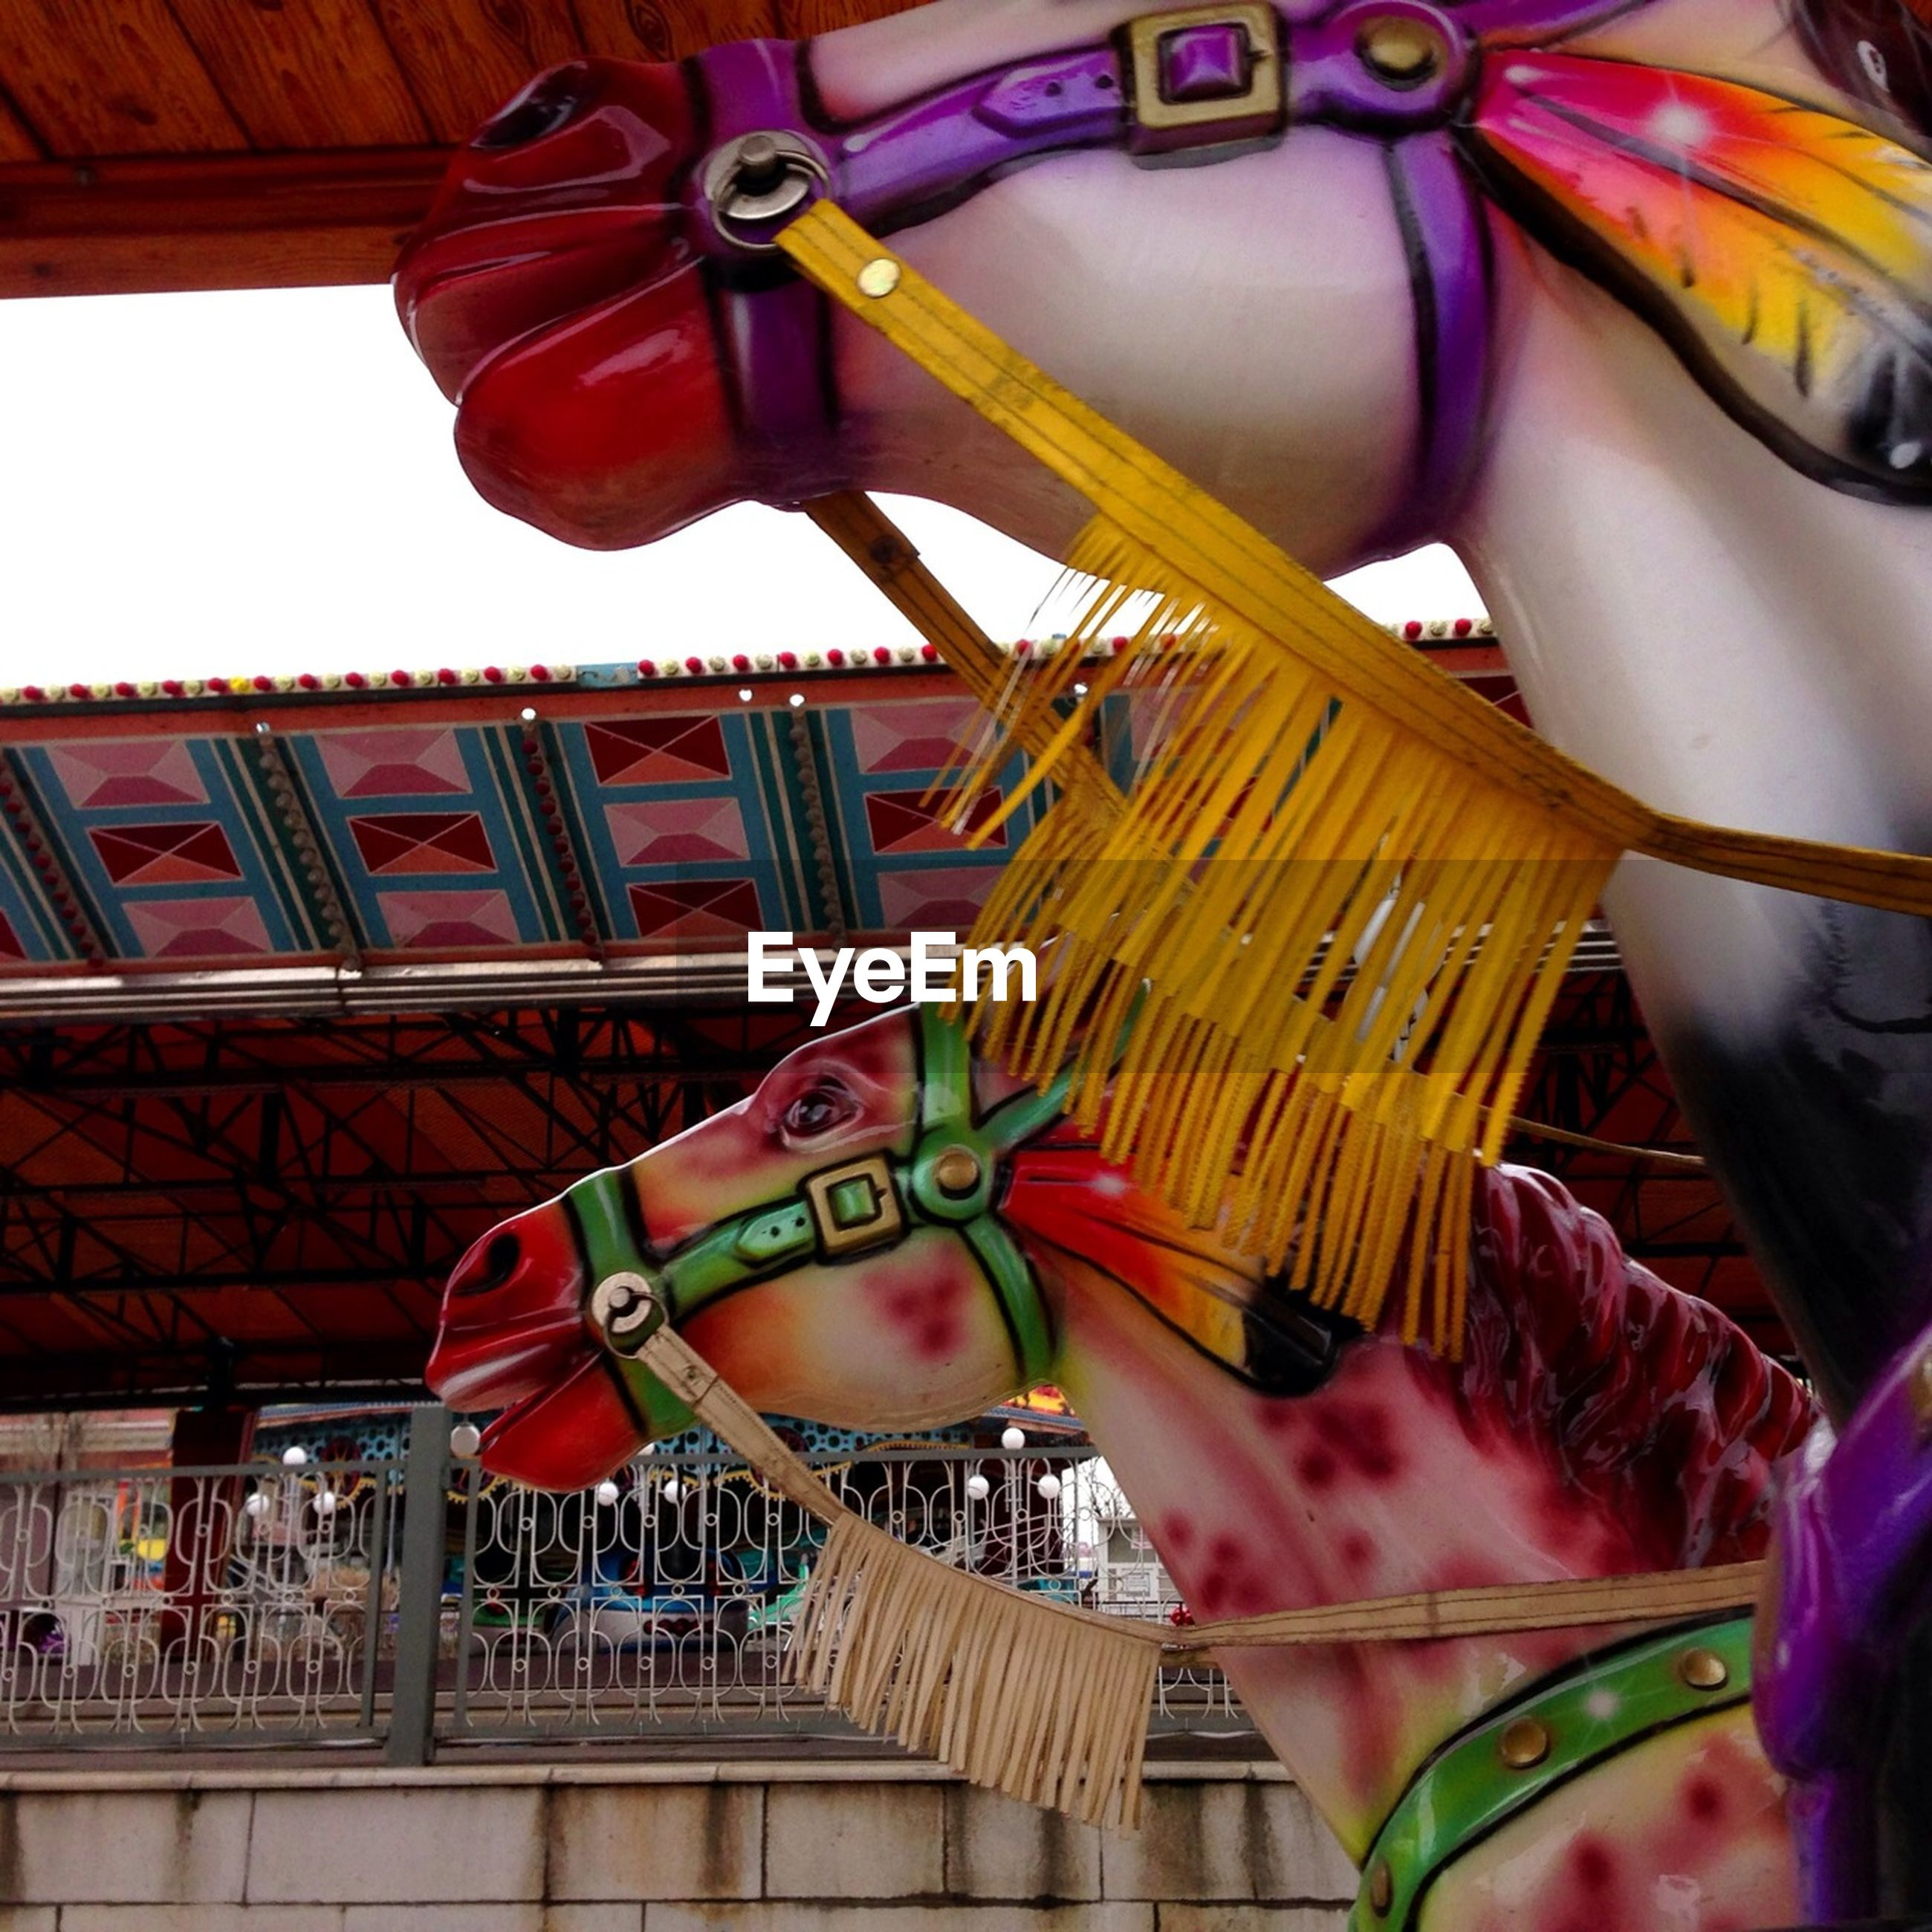 low angle view, architecture, built structure, amusement park, hanging, building exterior, arts culture and entertainment, tradition, cultures, amusement park ride, art and craft, carousel, art, decoration, day, multi colored, outdoors, sculpture, temple - building, creativity